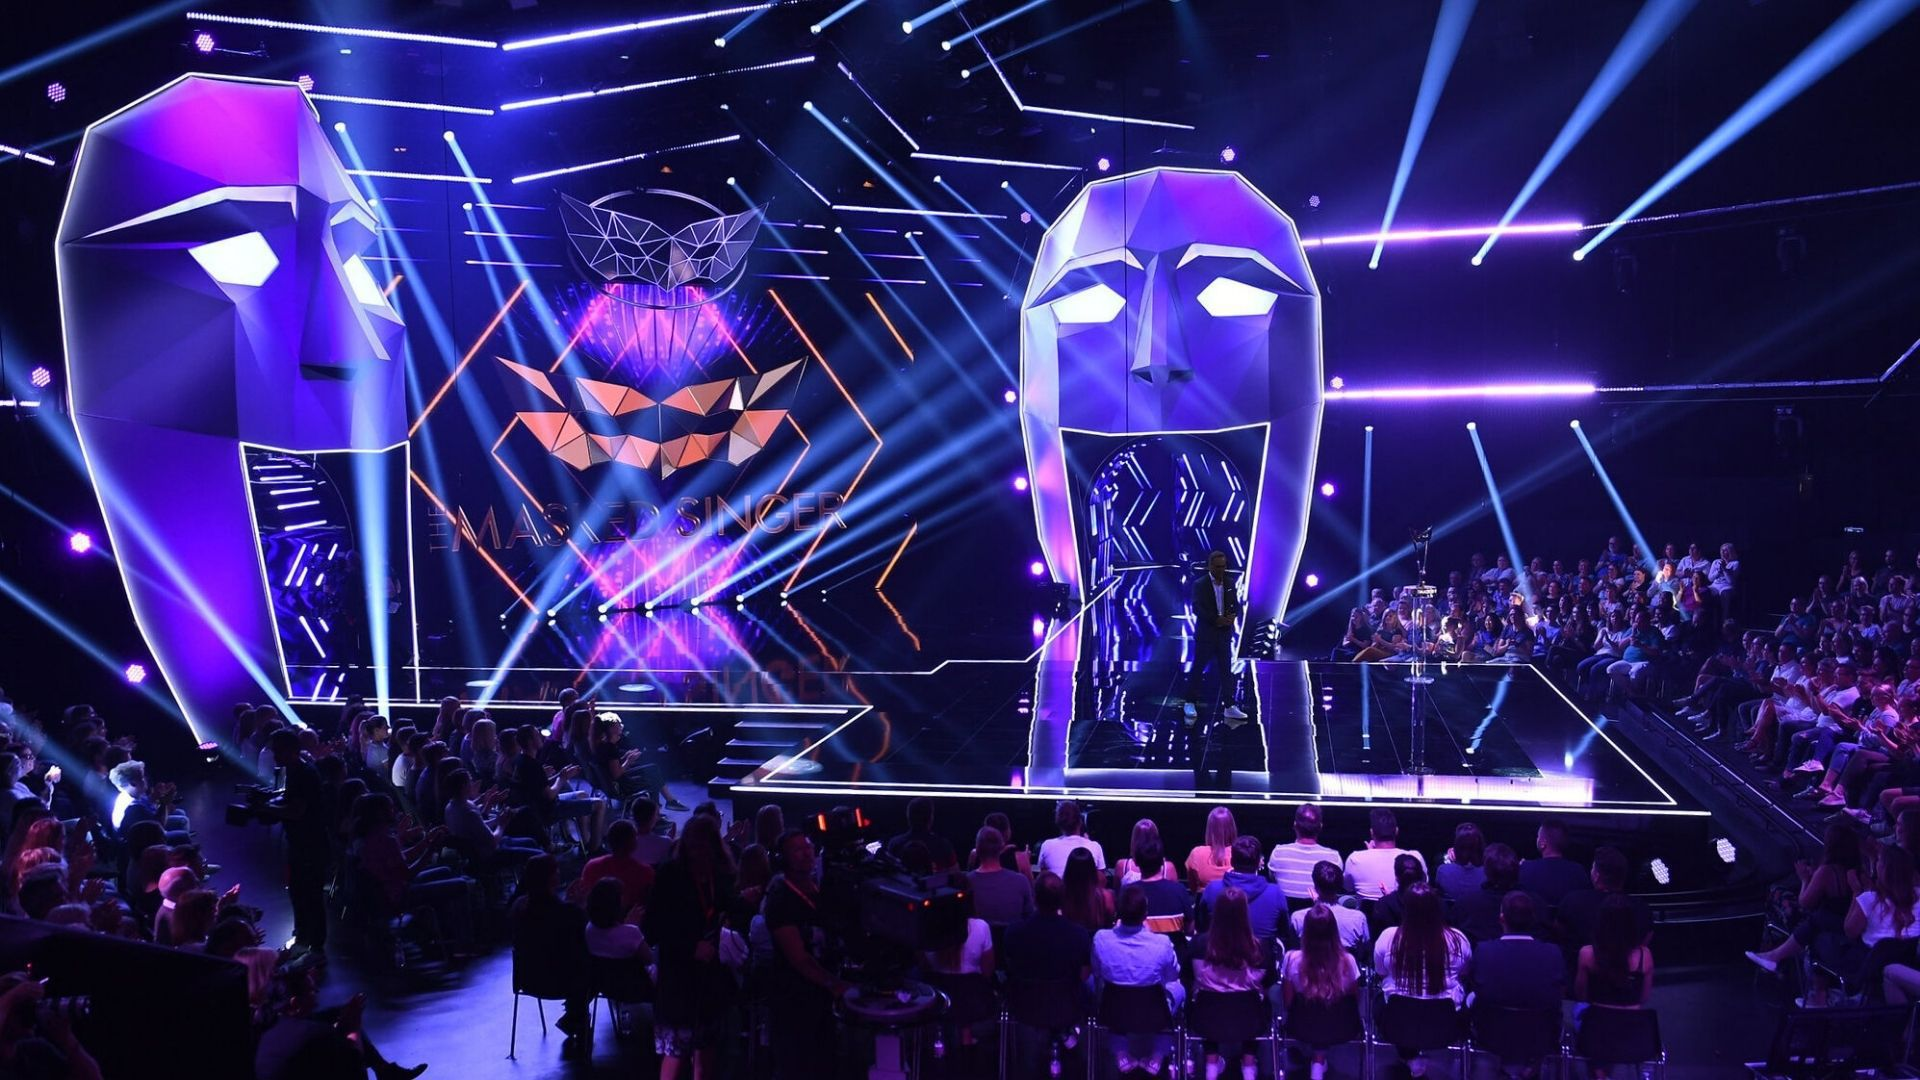 The Masked Singer: Das Skelett - Das Video!